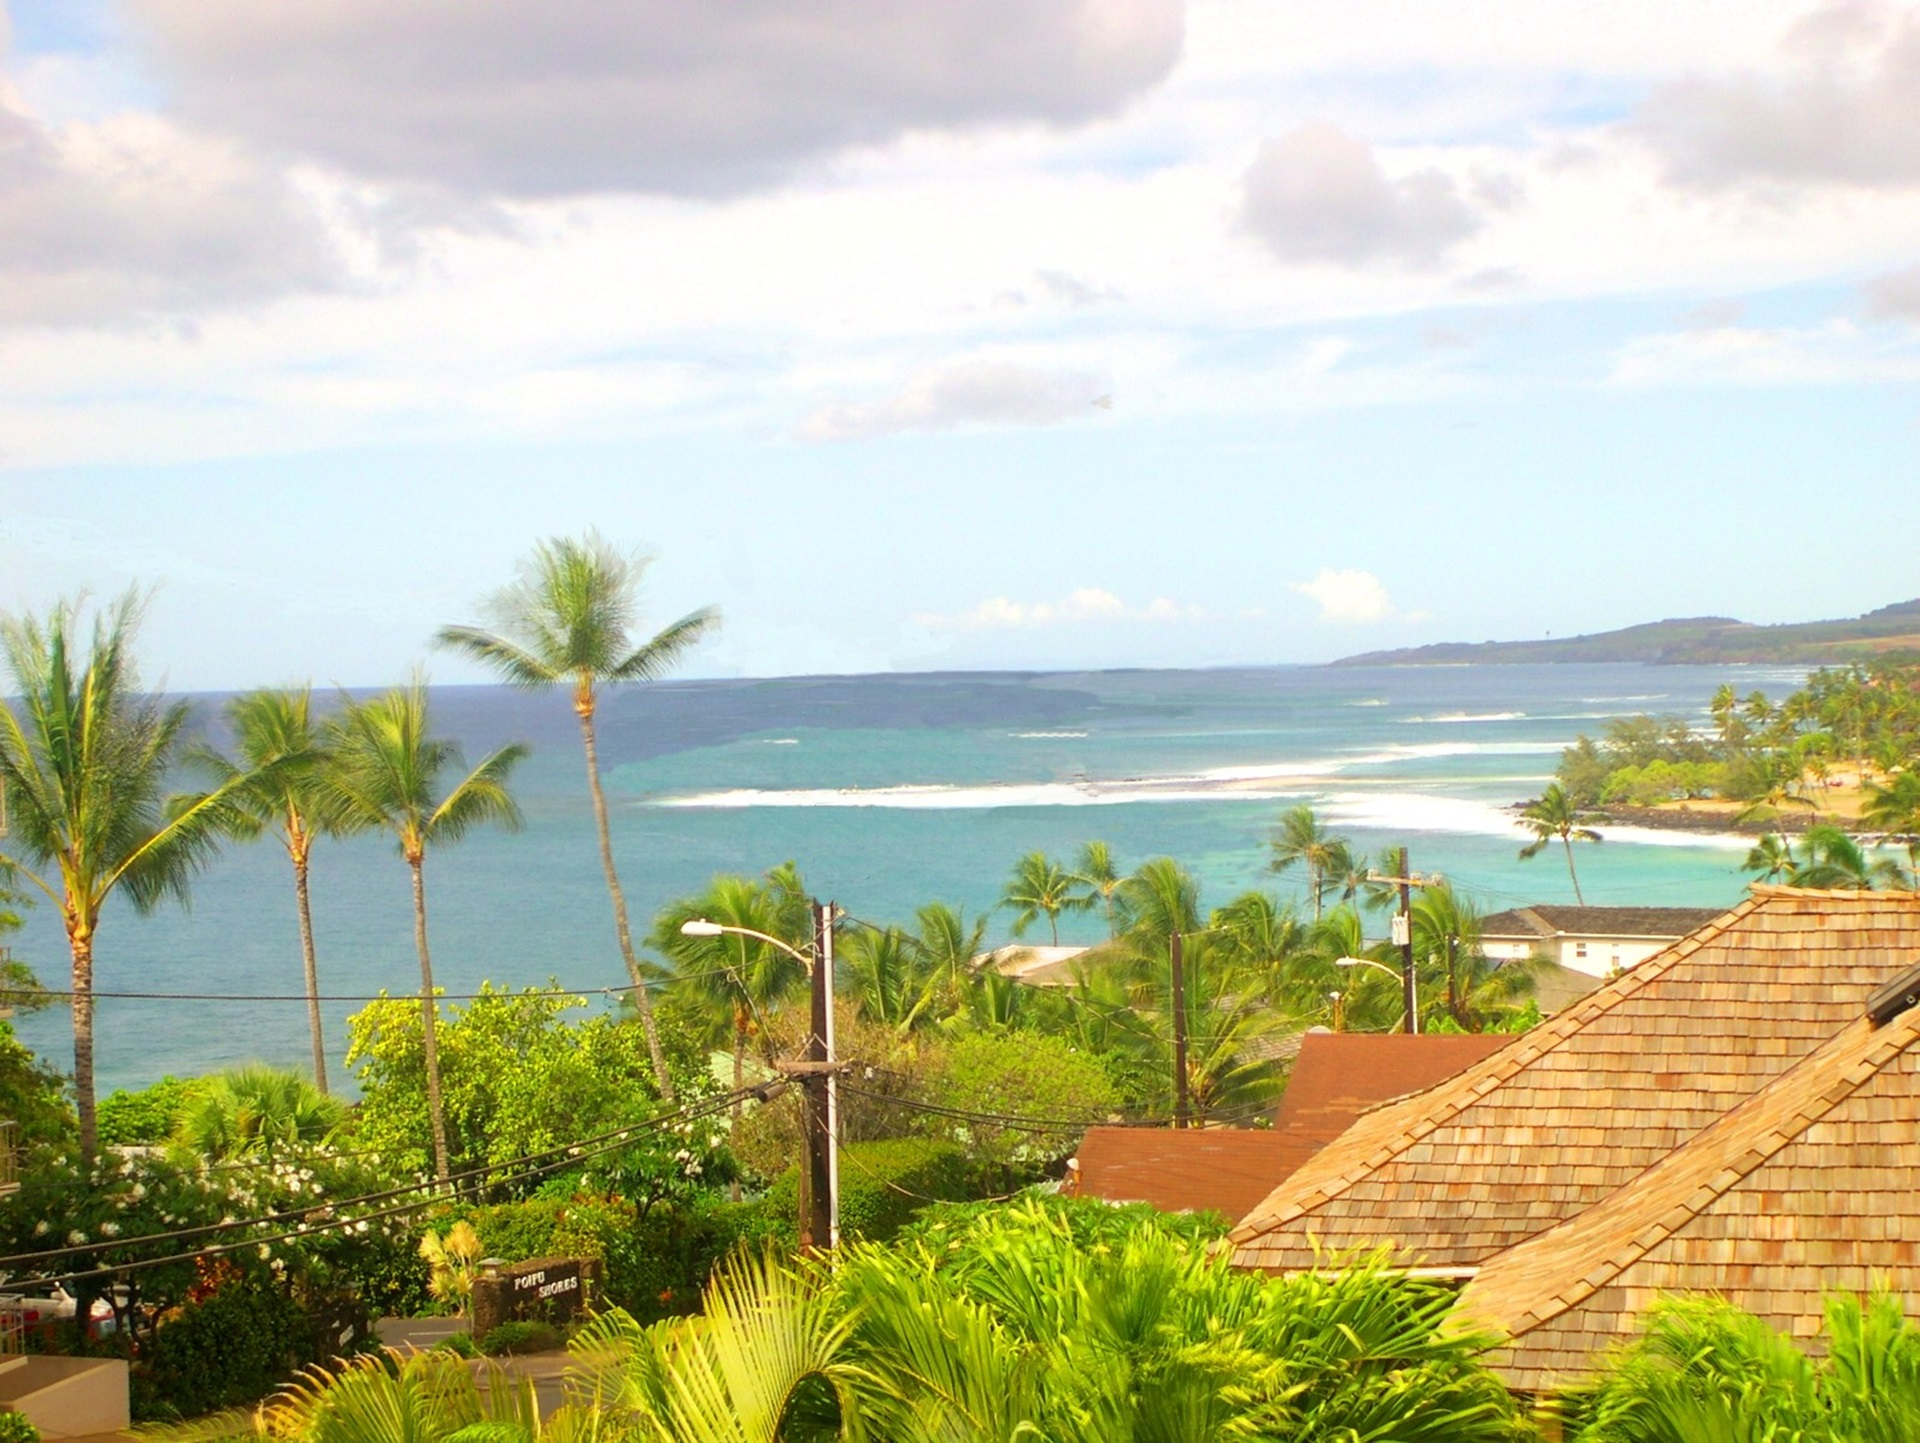 The home is located on a rise overlooking Kauai's southern coastline.  This view from the upper deck shows Brennecke beach in the foreground and Poipu Beach where the land juts out into the ocean